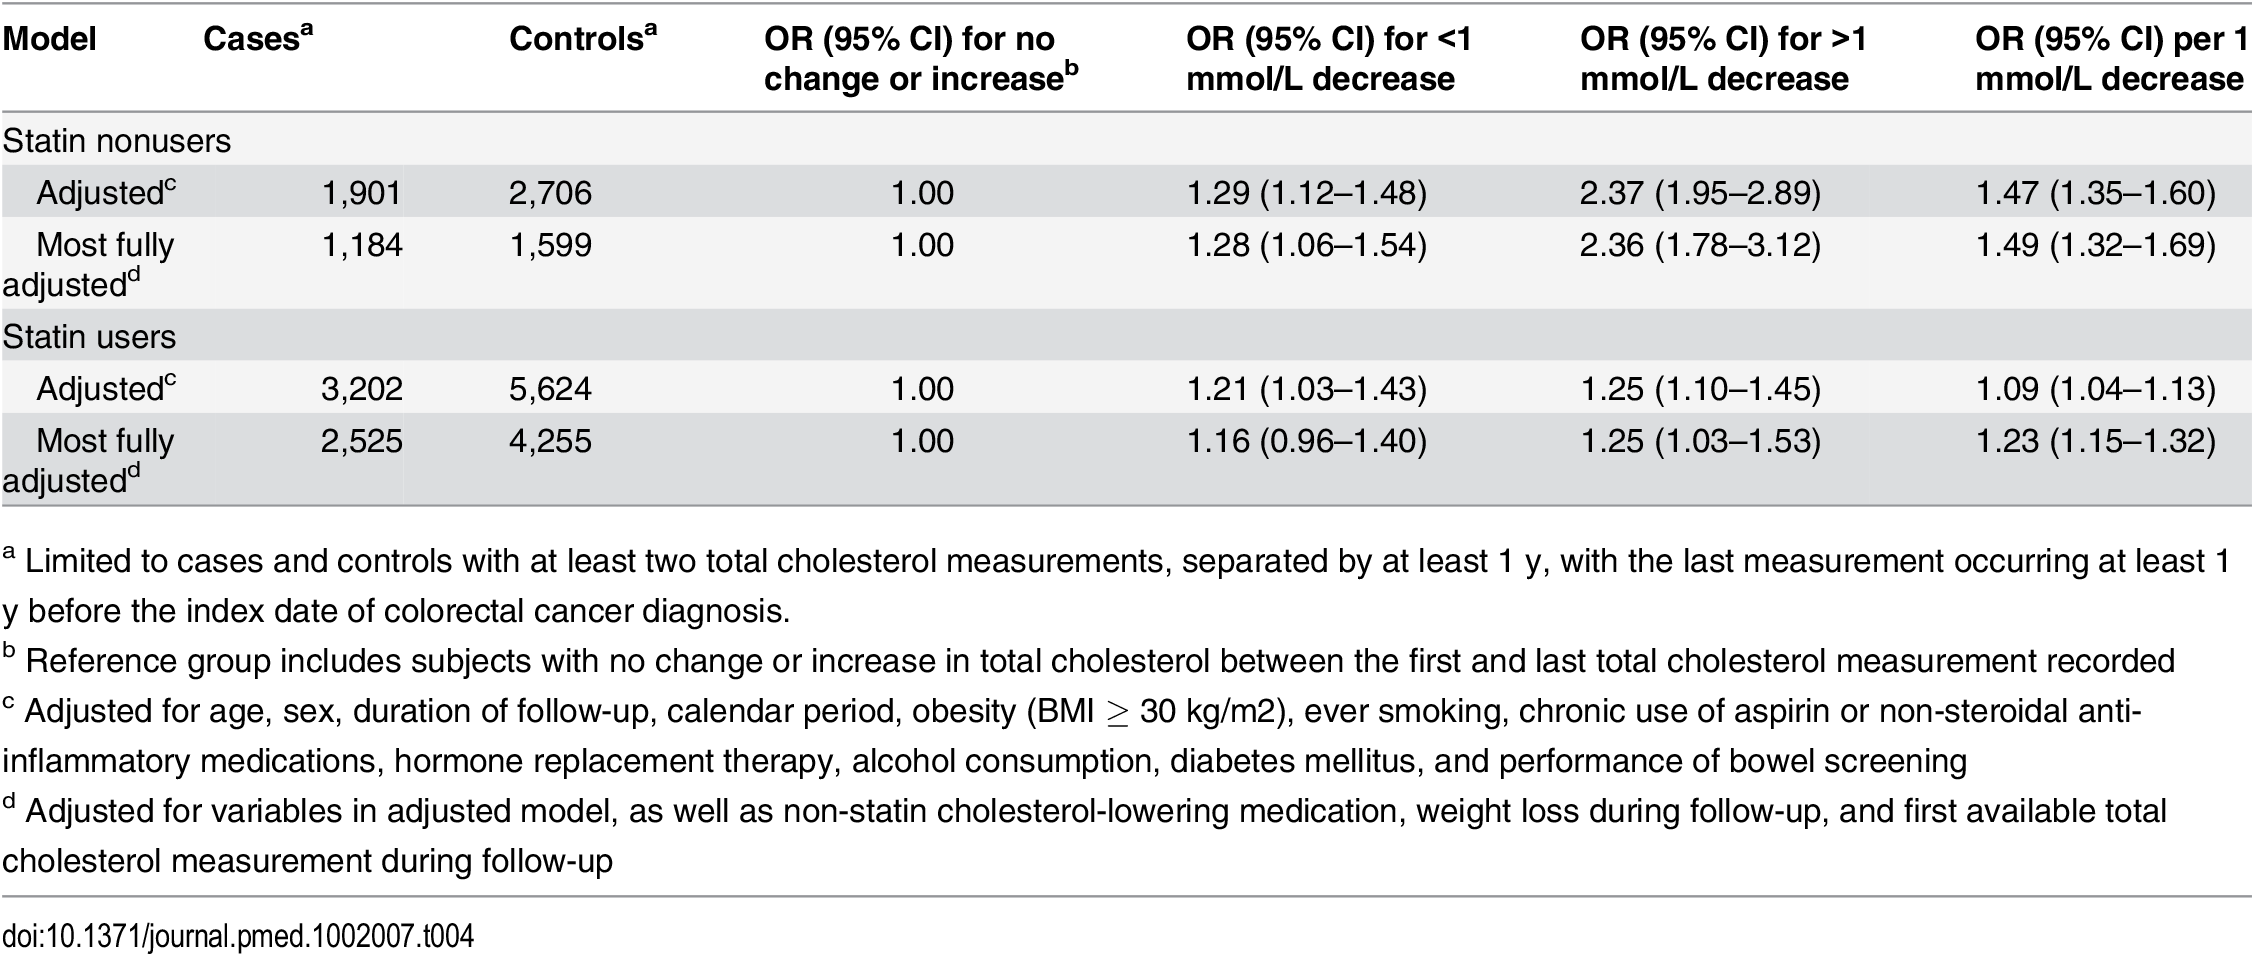 ORs for colorectal cancer risk by change in serum total cholesterol.